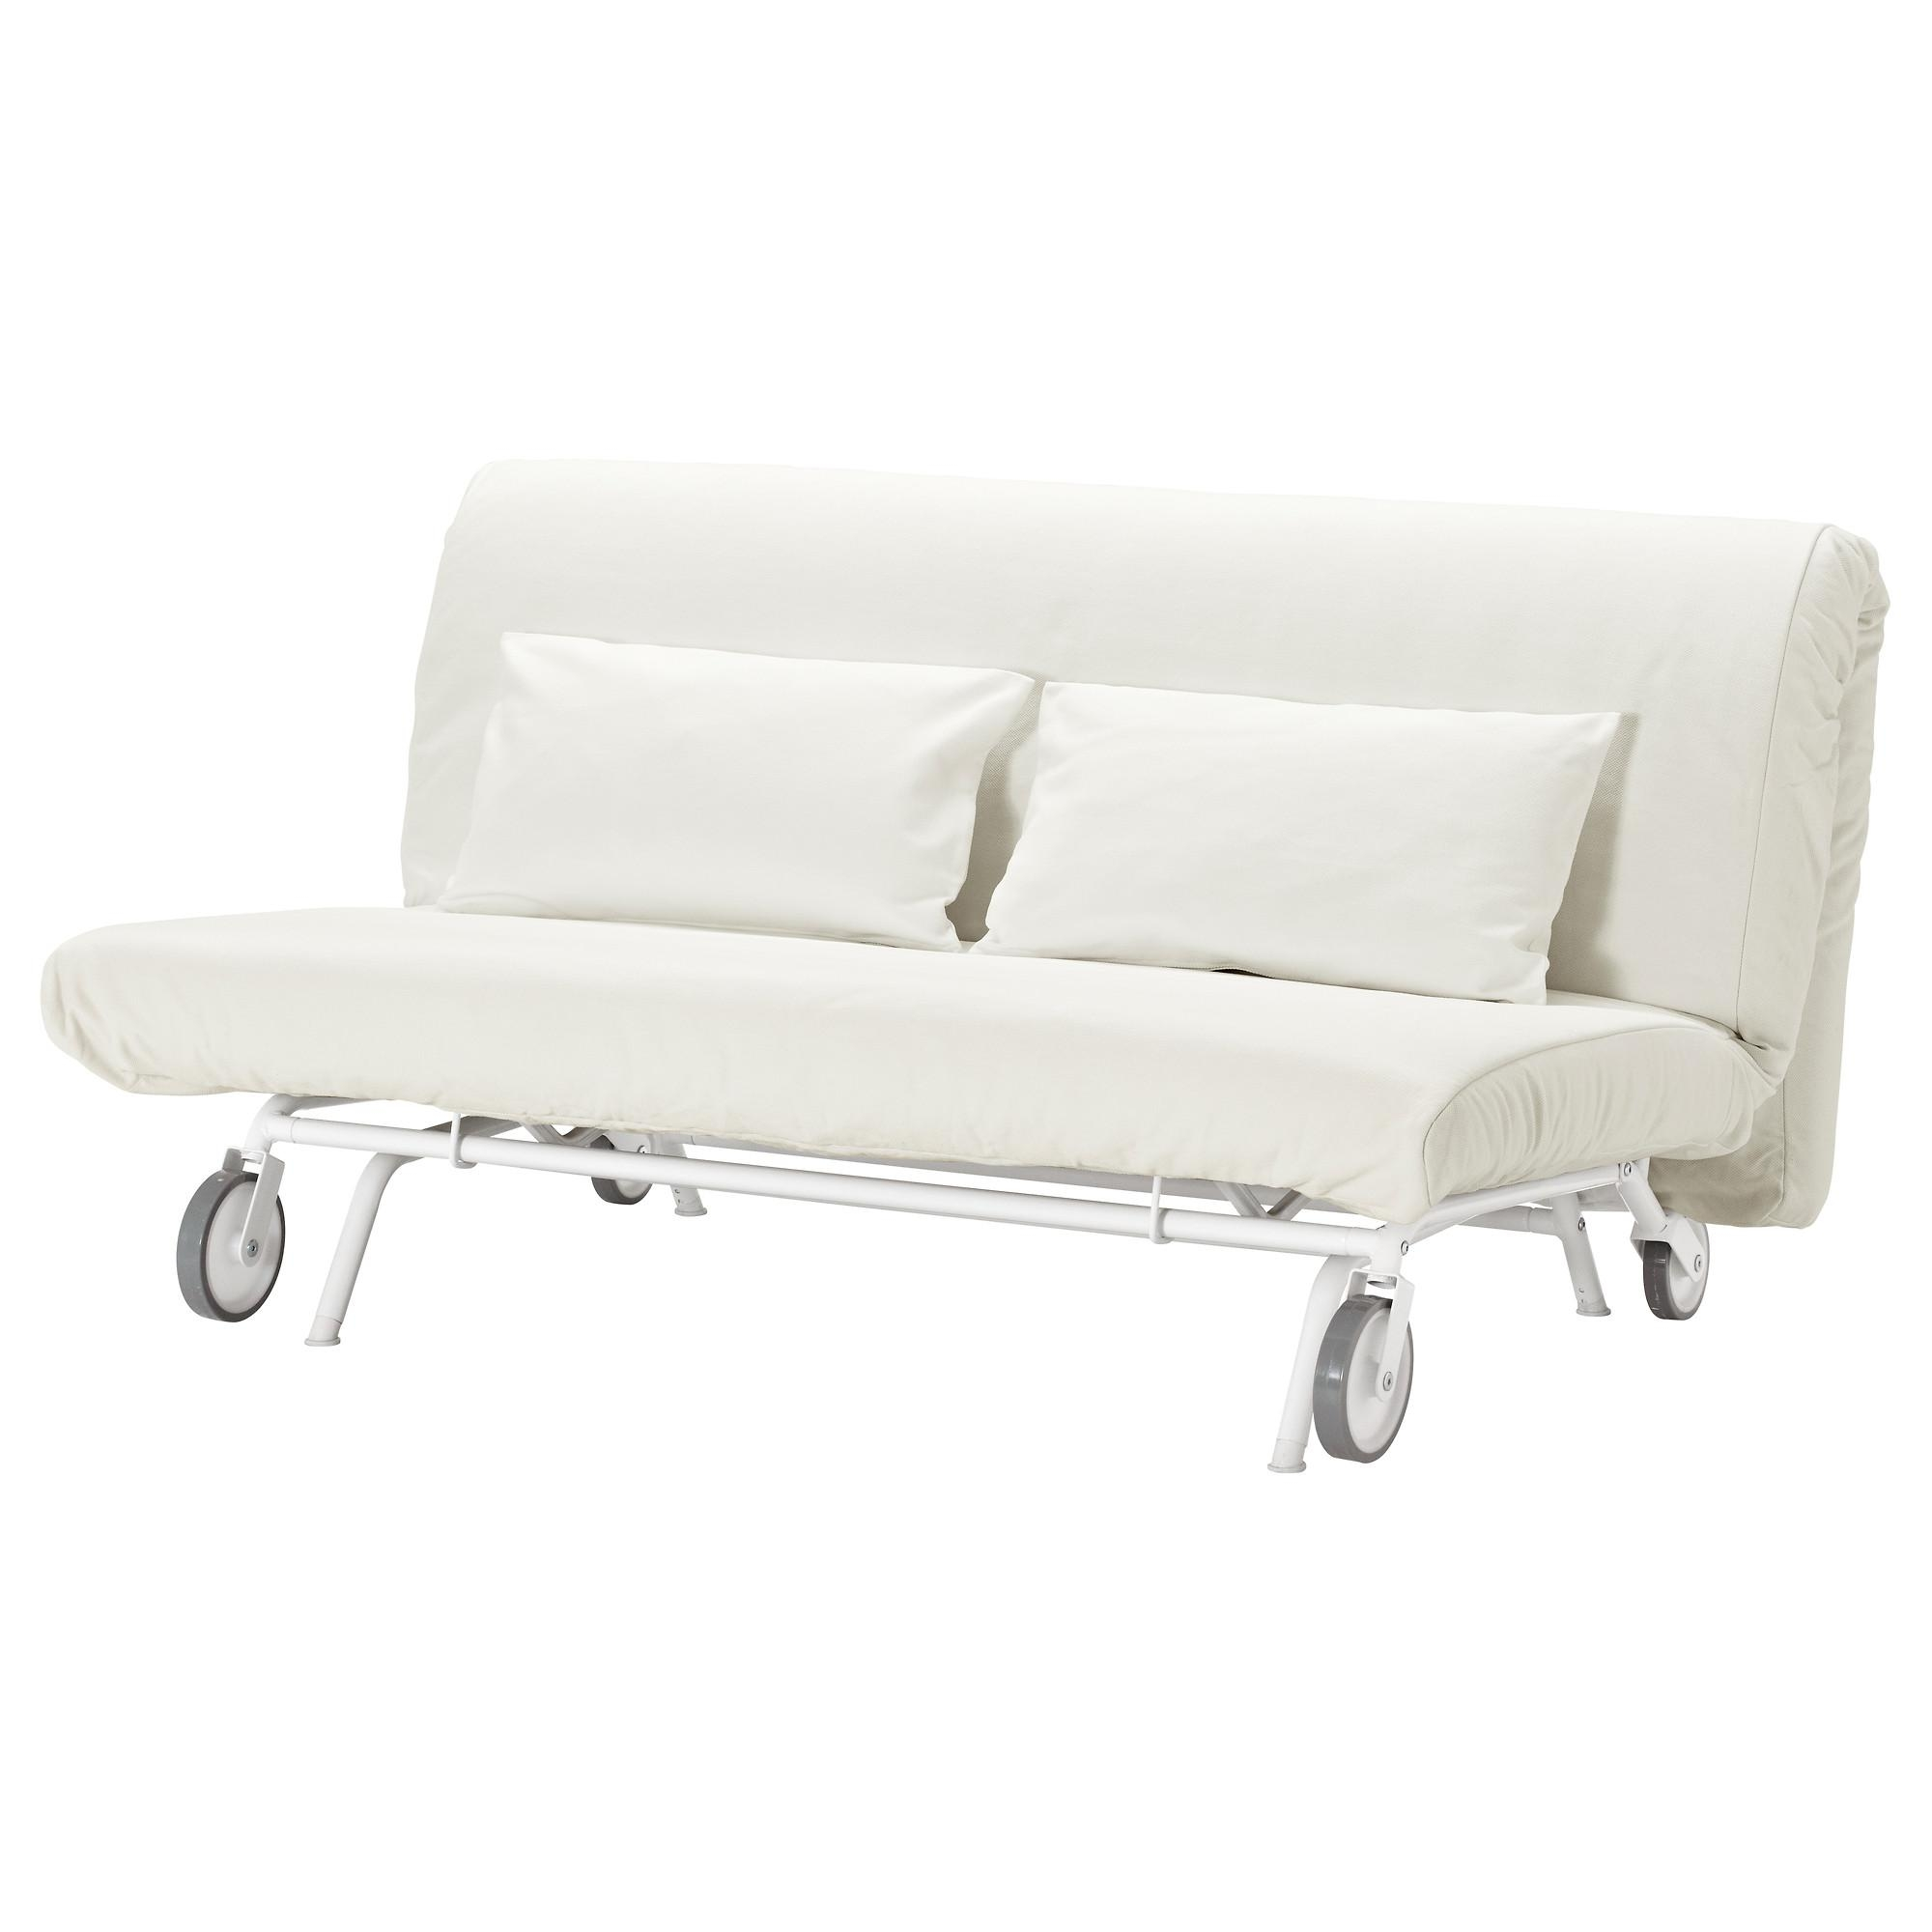 Sofa Beds & Futons – Ikea Intended For Sleeper Sofas Ikea (Image 13 of 20)